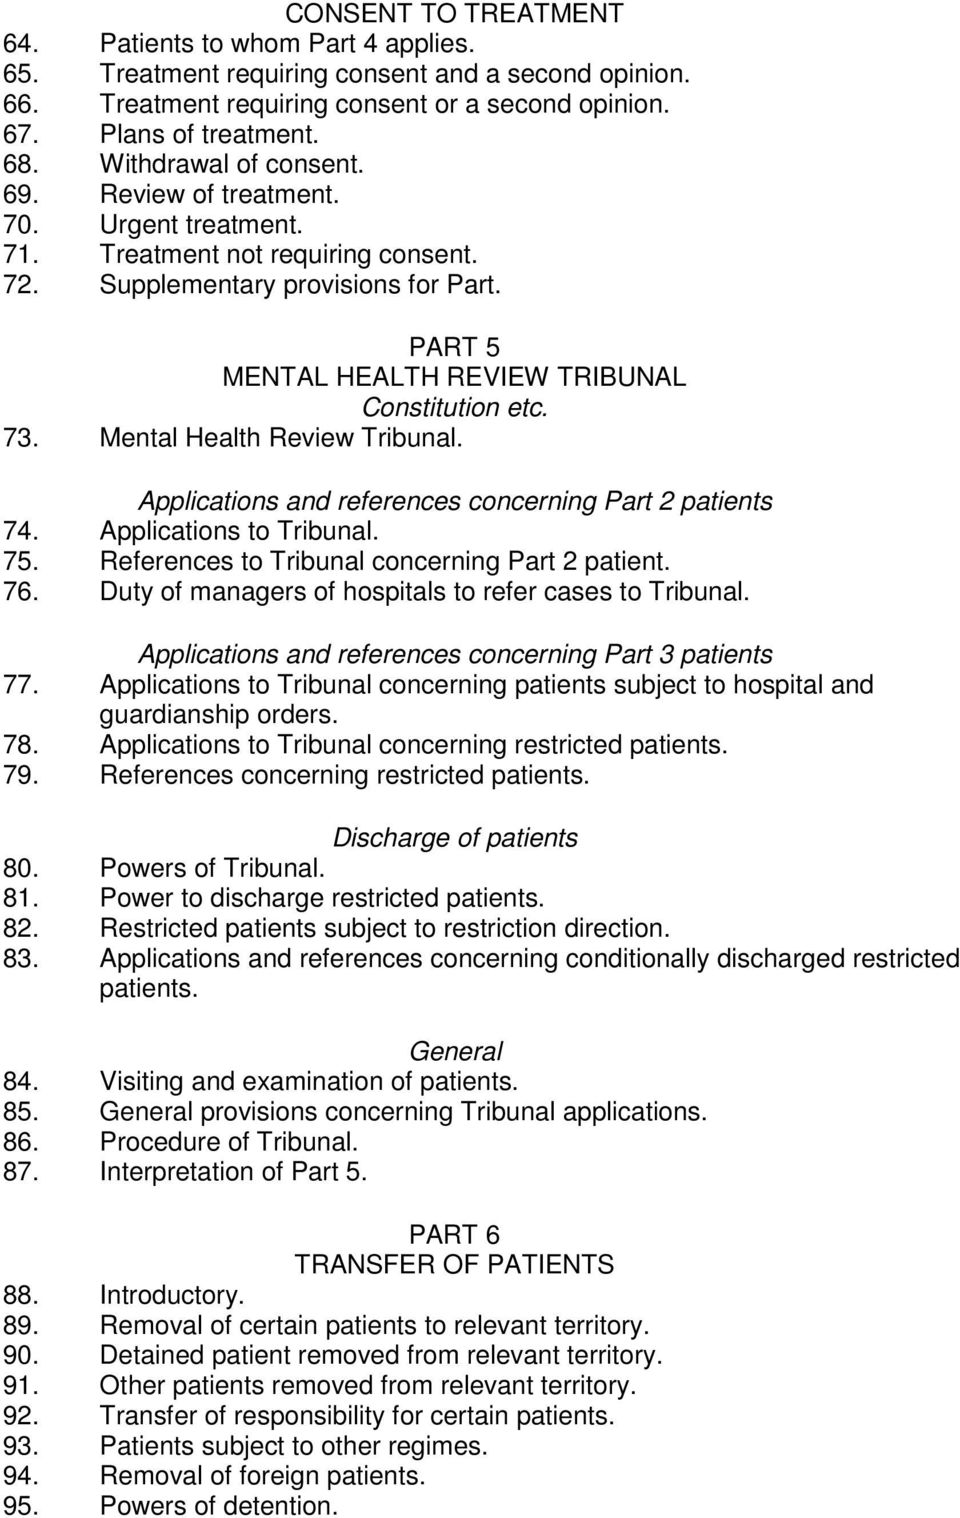 73. Mental Health Review Tribunal. Applications and references concerning Part 2 patients 74. Applications to Tribunal. 75. References to Tribunal concerning Part 2 patient. 76.